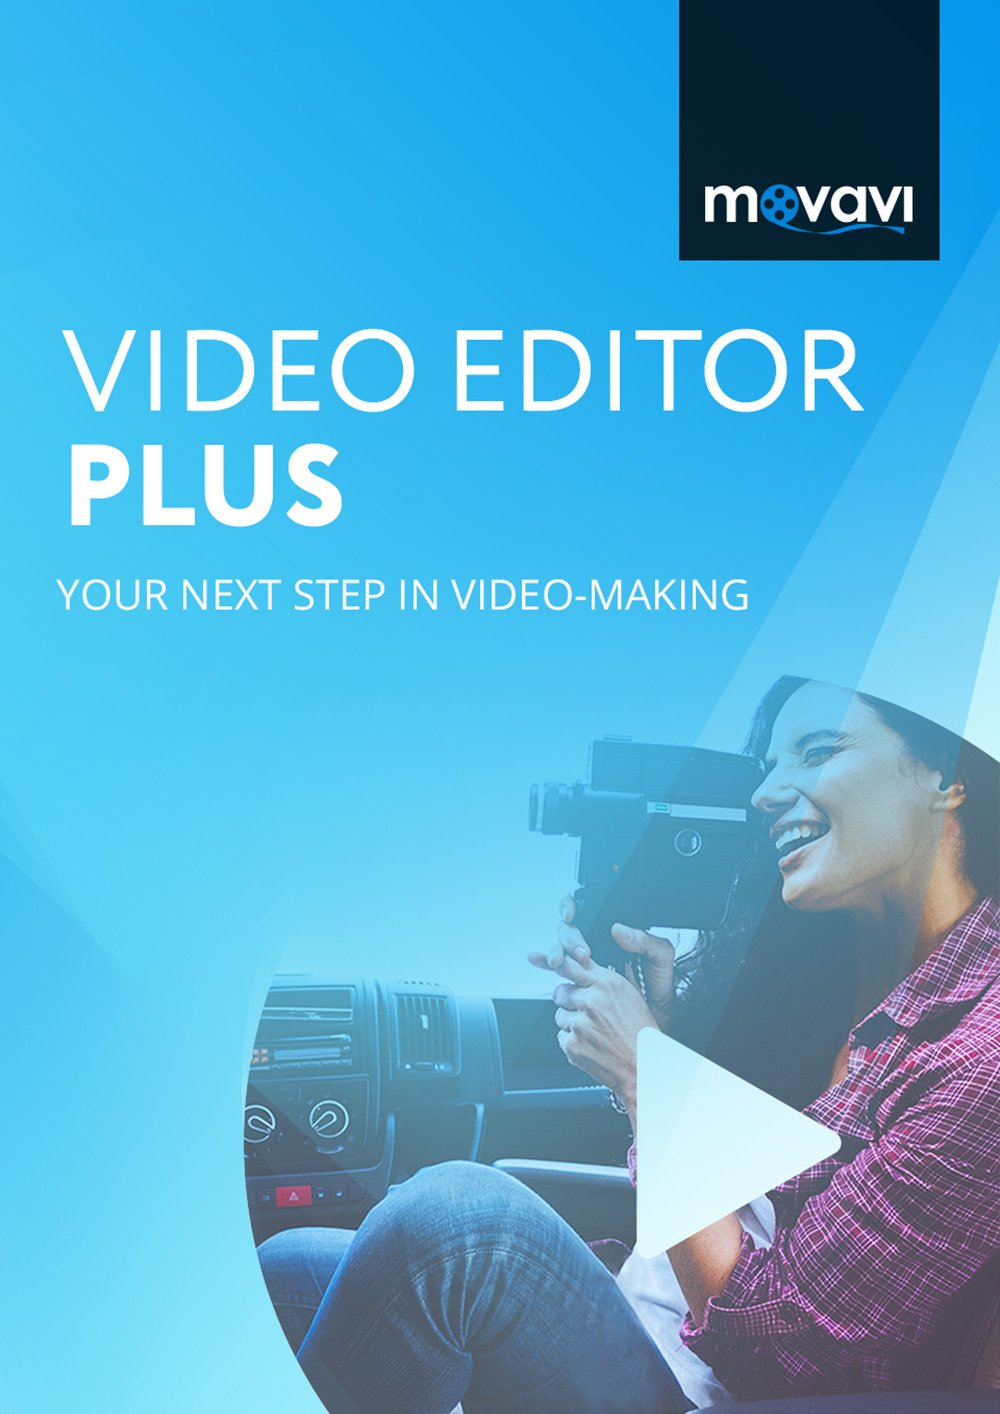 Movavi Video Editor 15 Plus [PC Download] by Movavi Software Inc